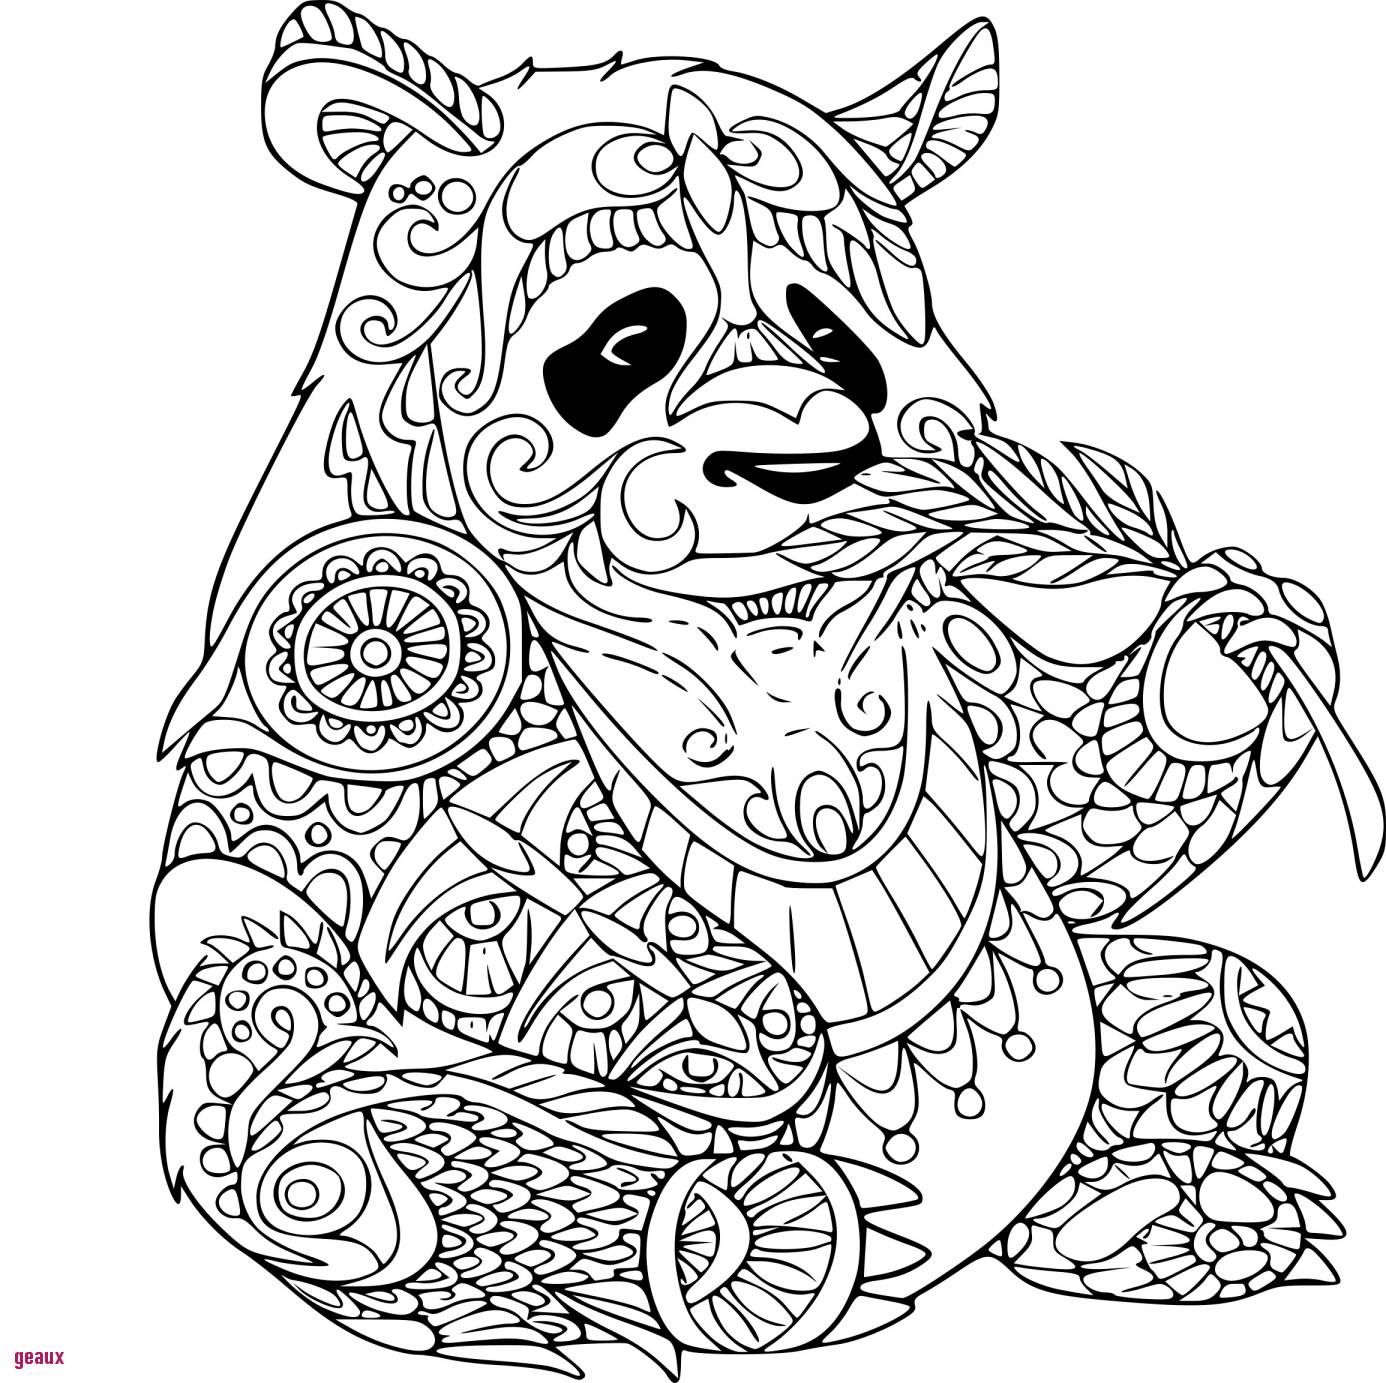 Coloriage Anti Stress Mandala Gratuit top Construction ...